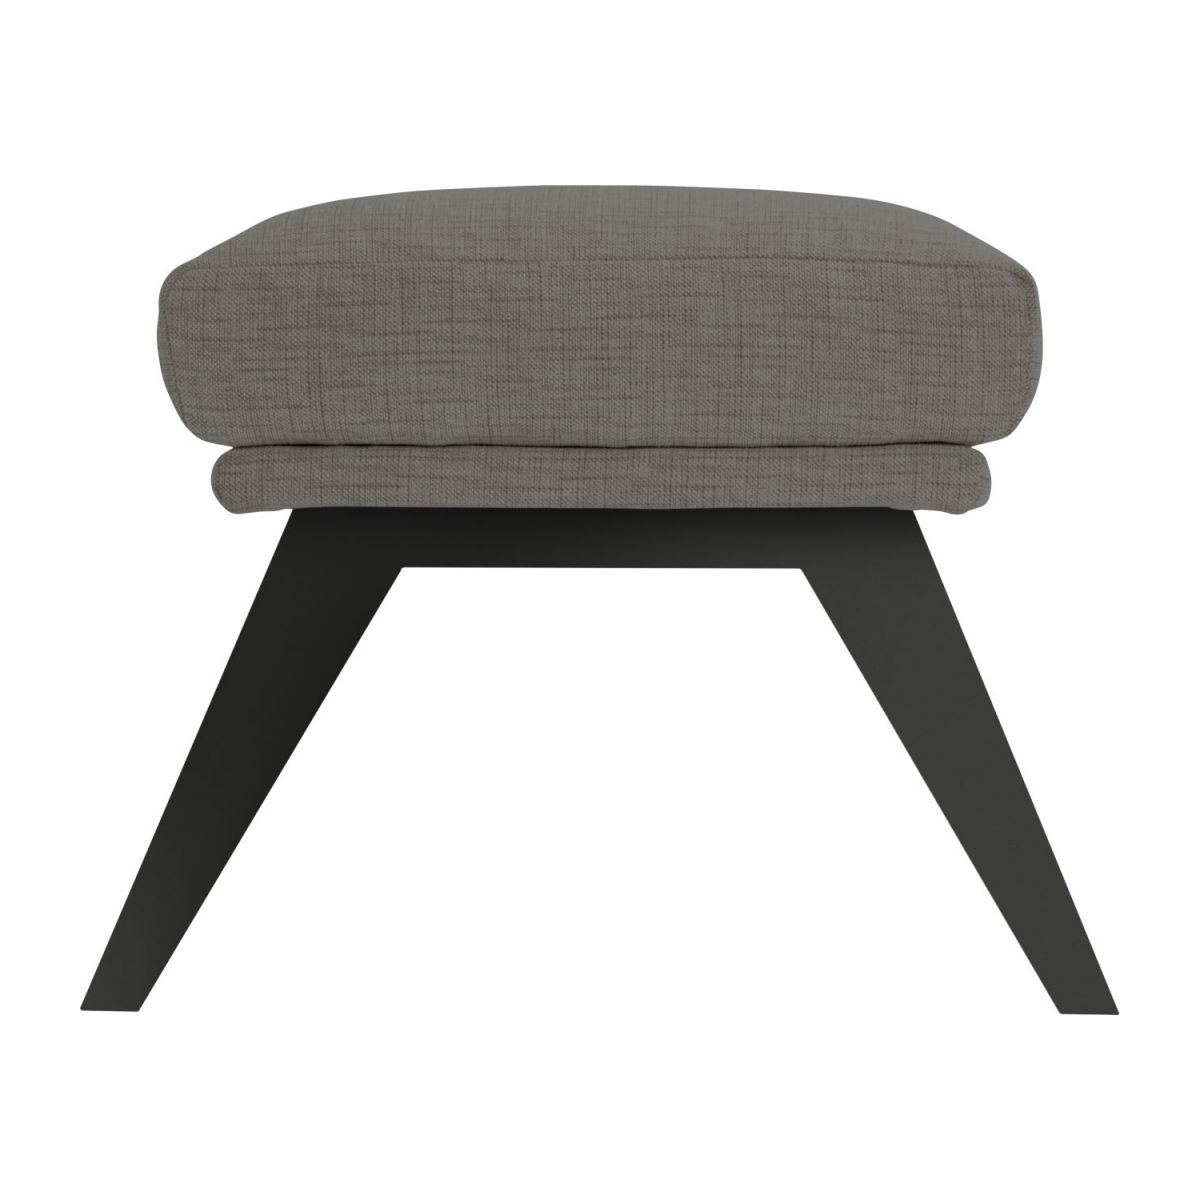 Footstool in Ancio fabric, river rock with dark legs n°4